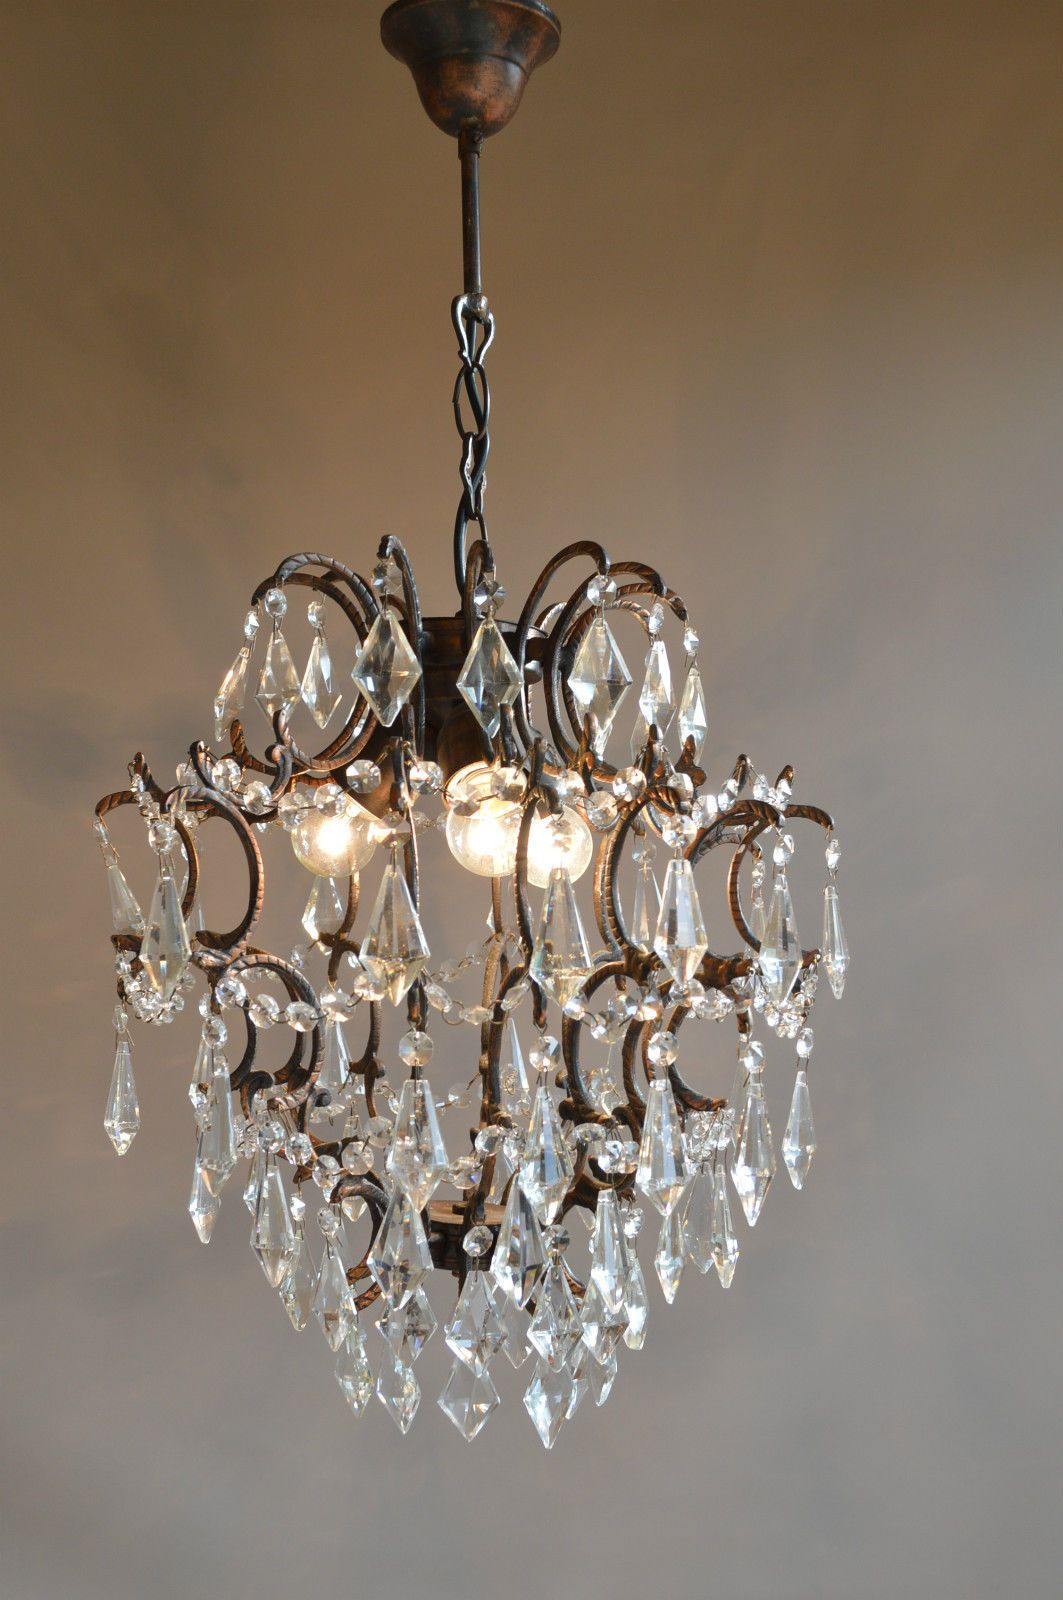 Unique Antique French Style Vintage Crystal Chandelier Lighting